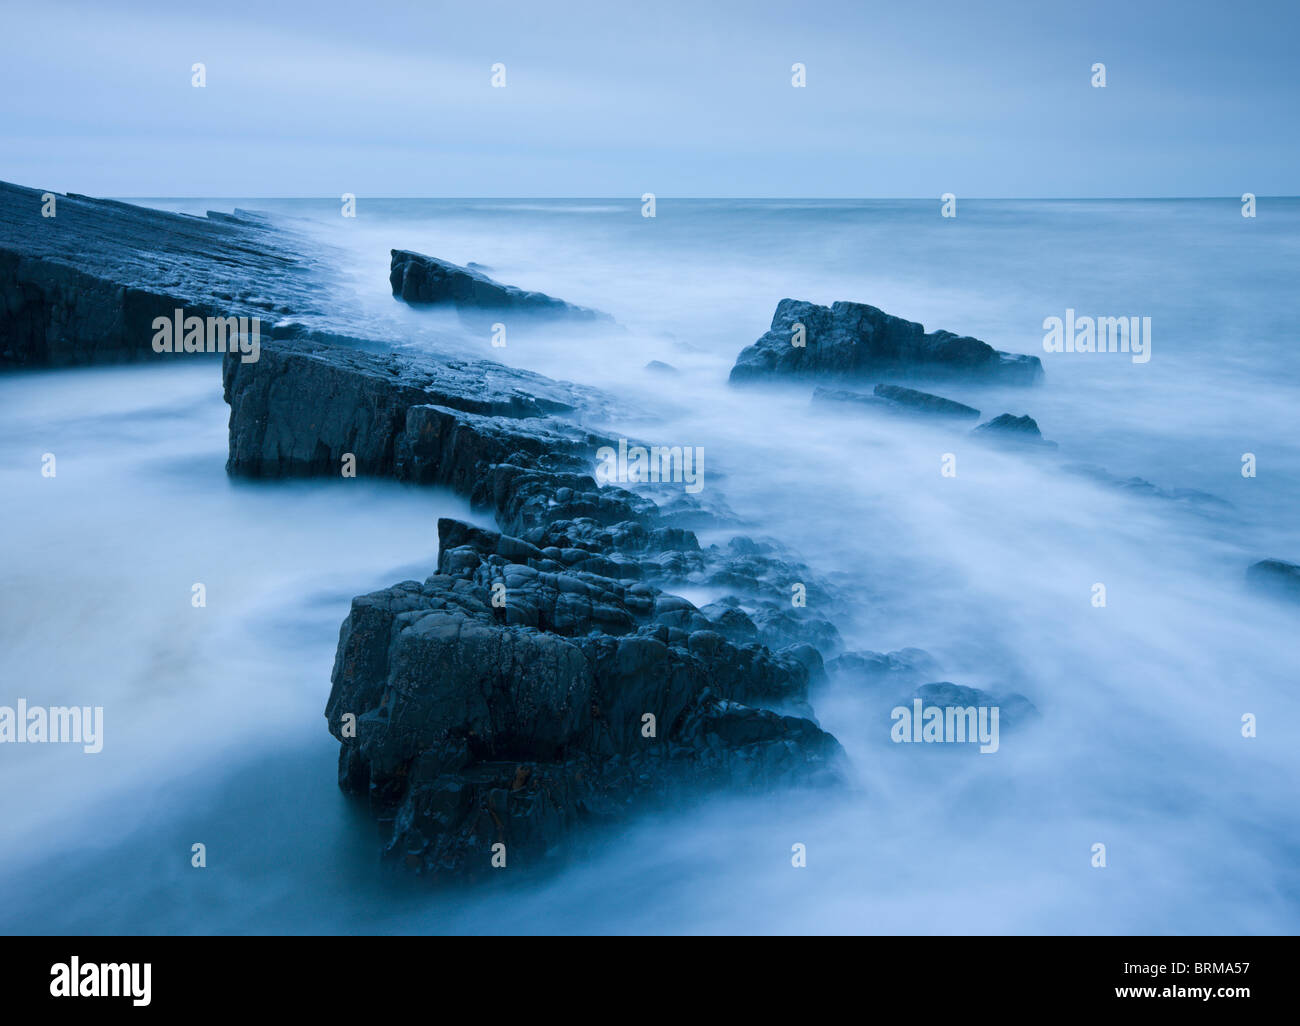 Swirling tide around jagged rocks on Spekes Mill Mouth beach, Hartland, Devon, England. Spring (April) 2010. - Stock Image